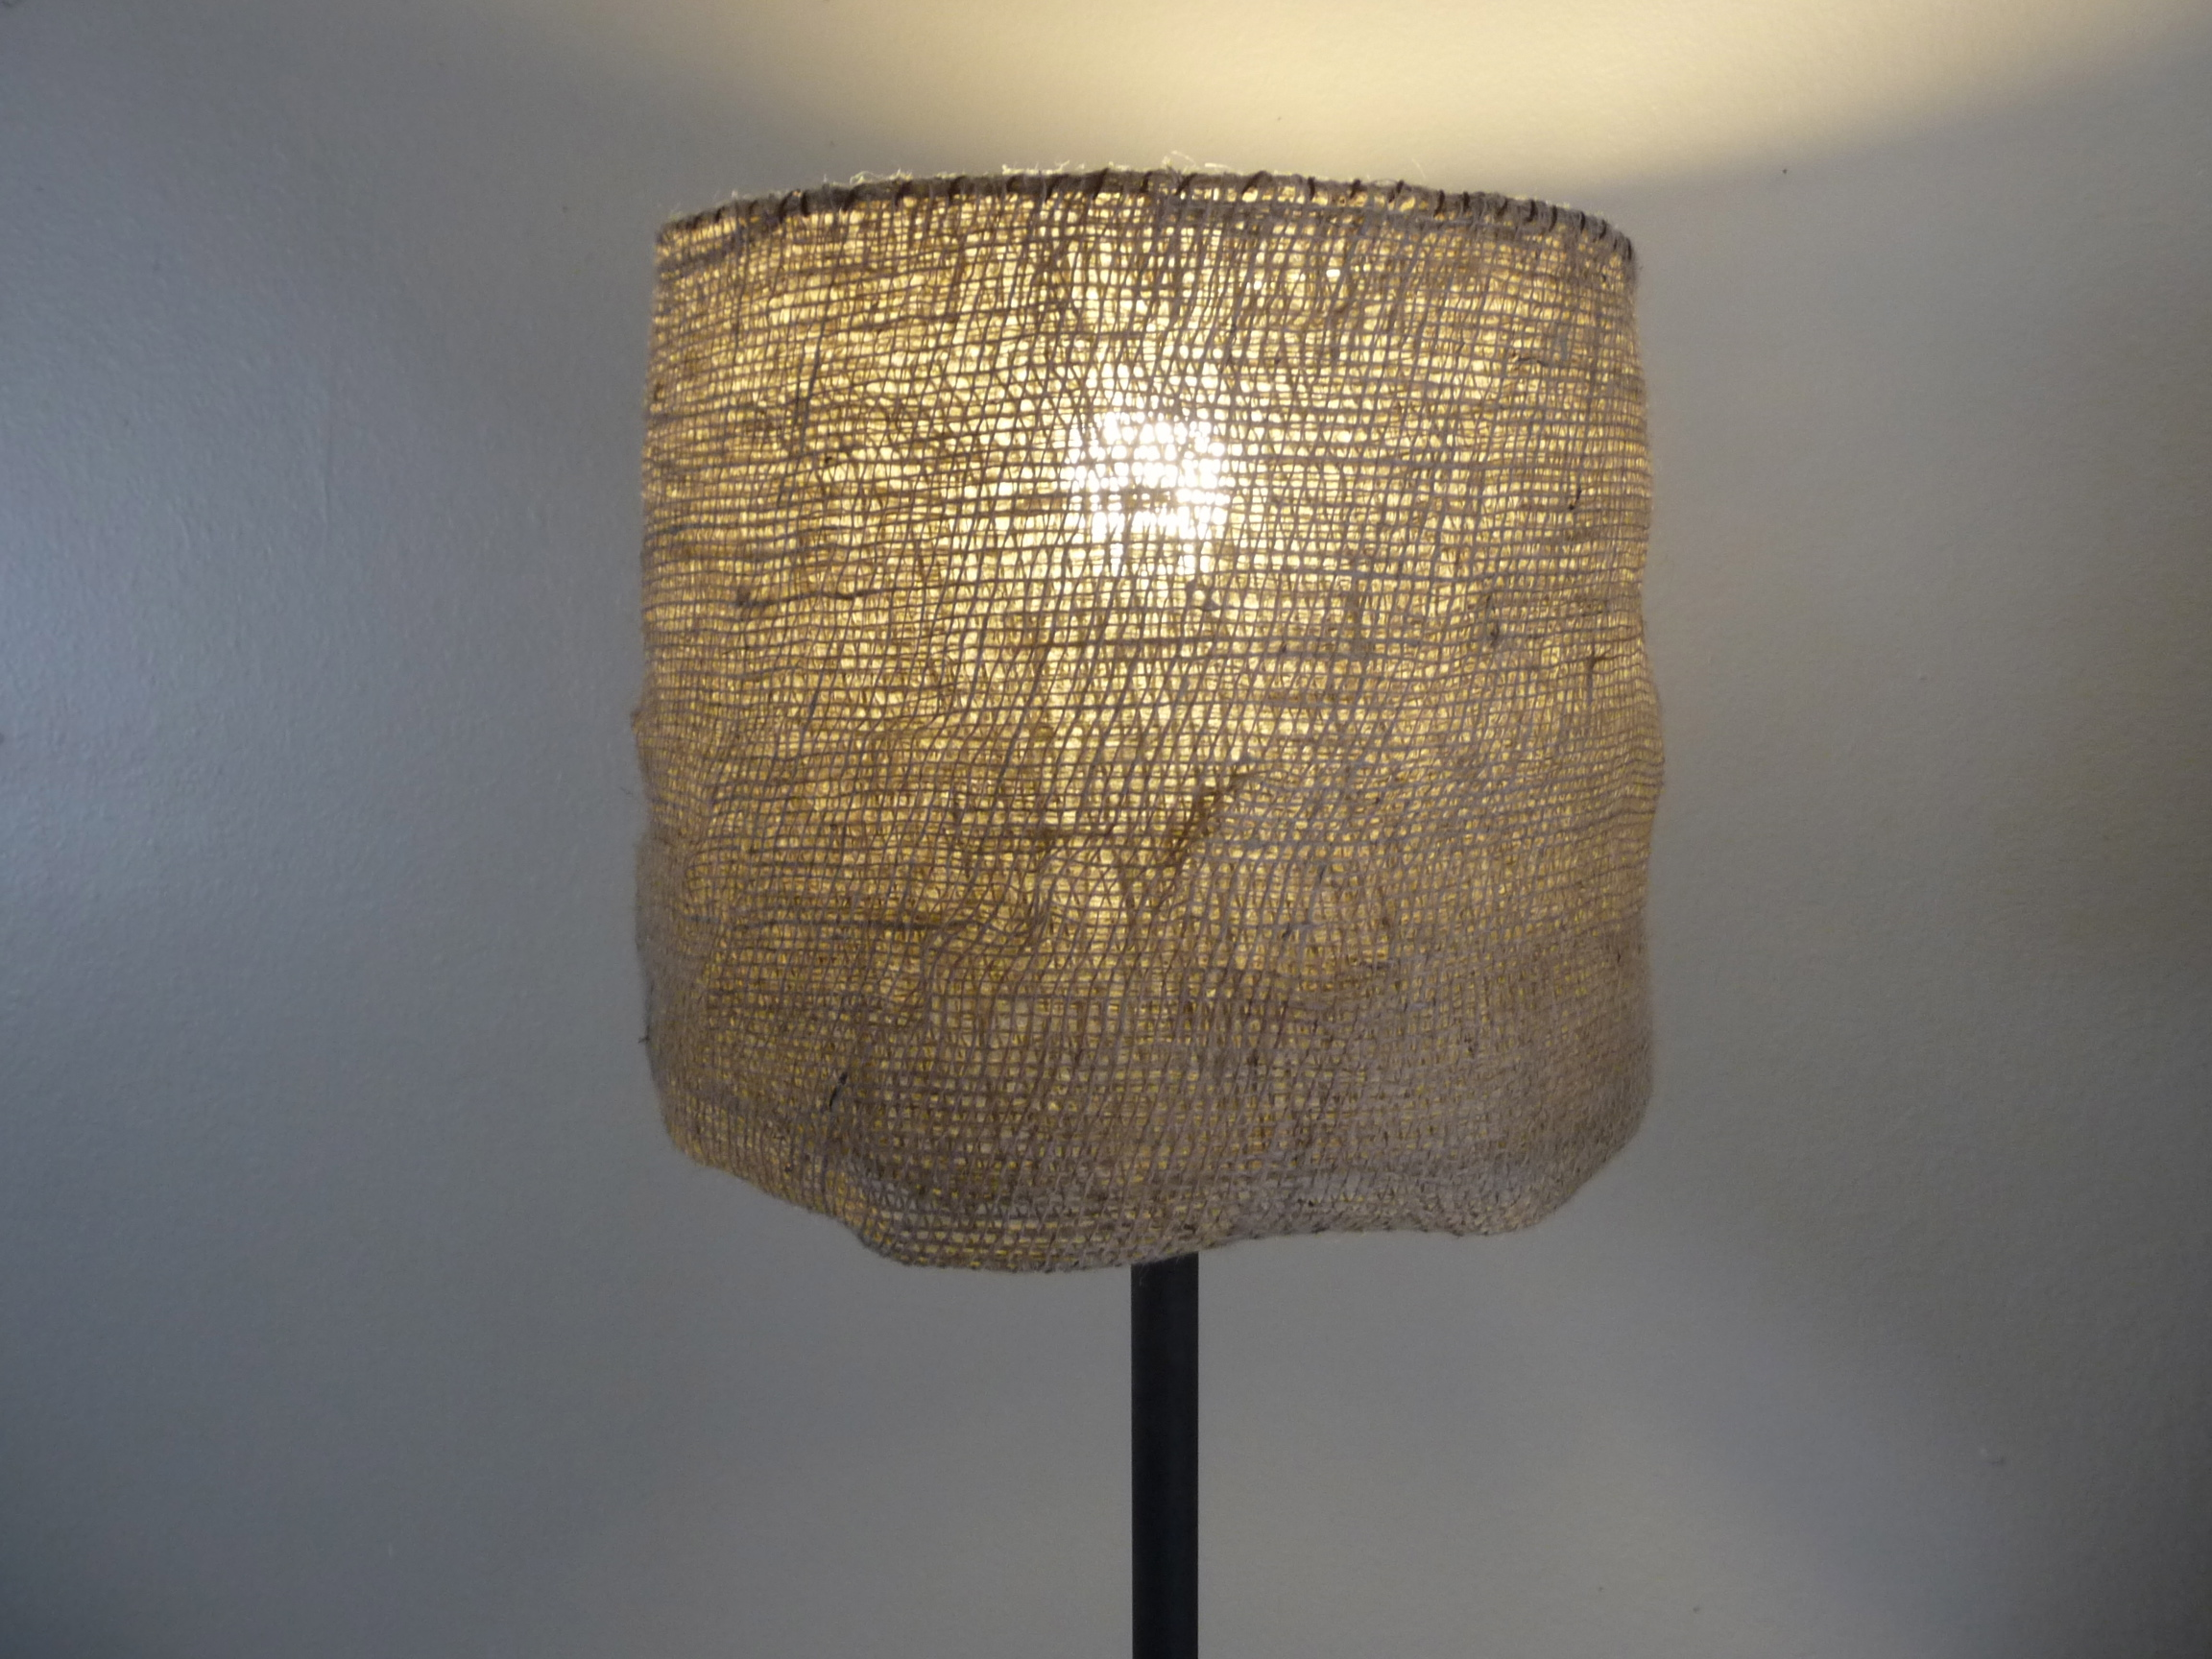 Pied Conique Bois Diy Garden Burlap Lamp Shade - Craft Organic